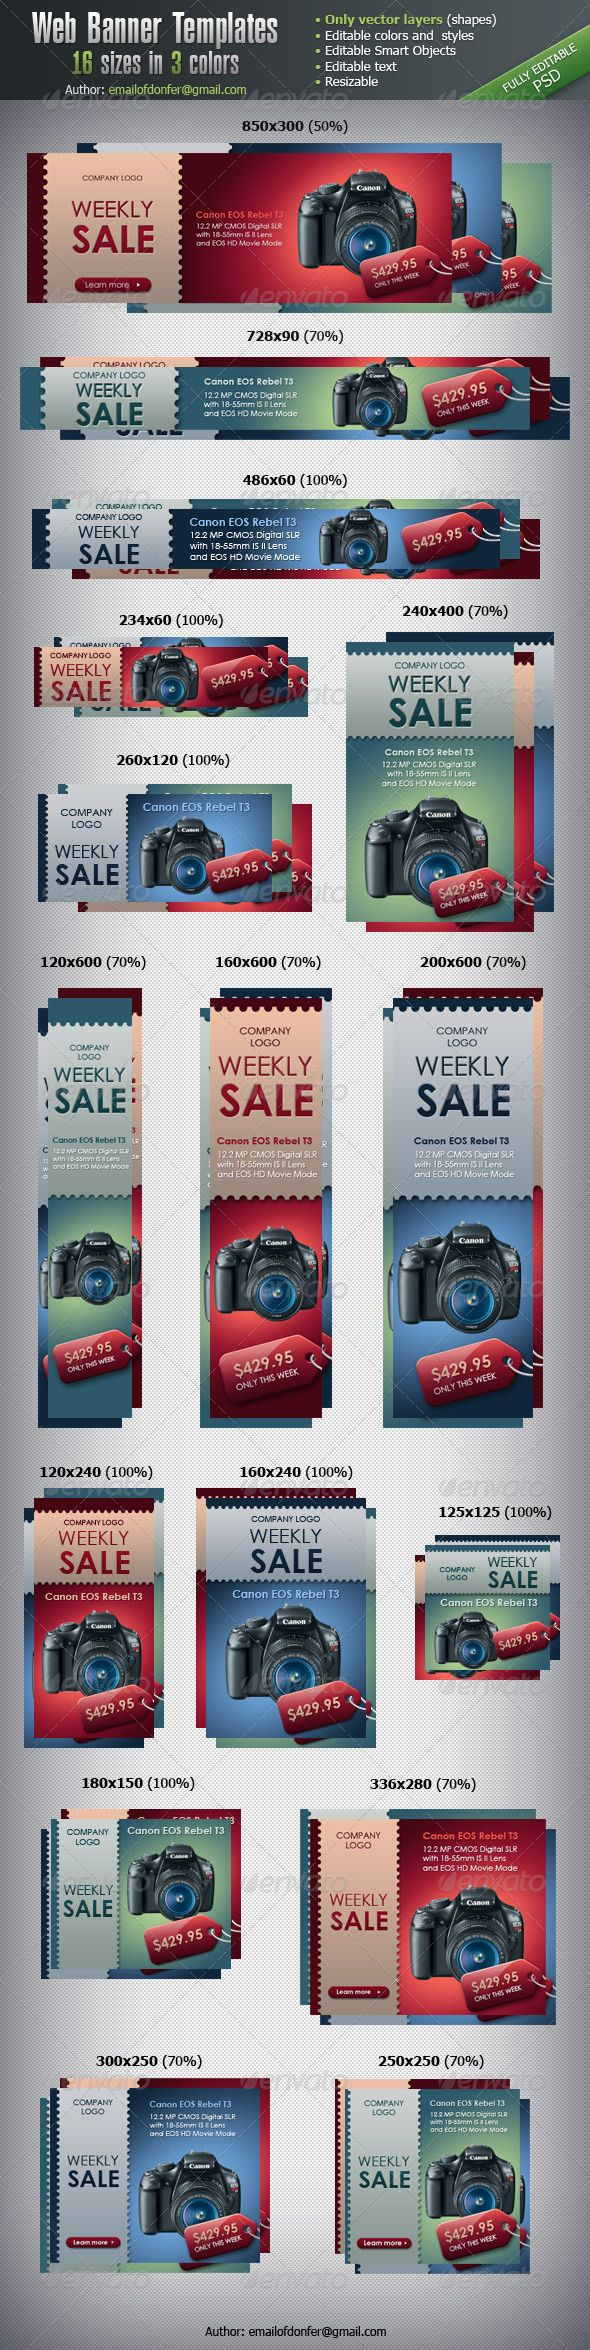 Web banners, banner designs, banner designer  Sandy Rowley favorites.  Beautiful banner design. Call anytime 775 453 6120. www.renowebdesigner.com   Web Elements - Web Banner Templates - 16 sizes | GraphicRiver